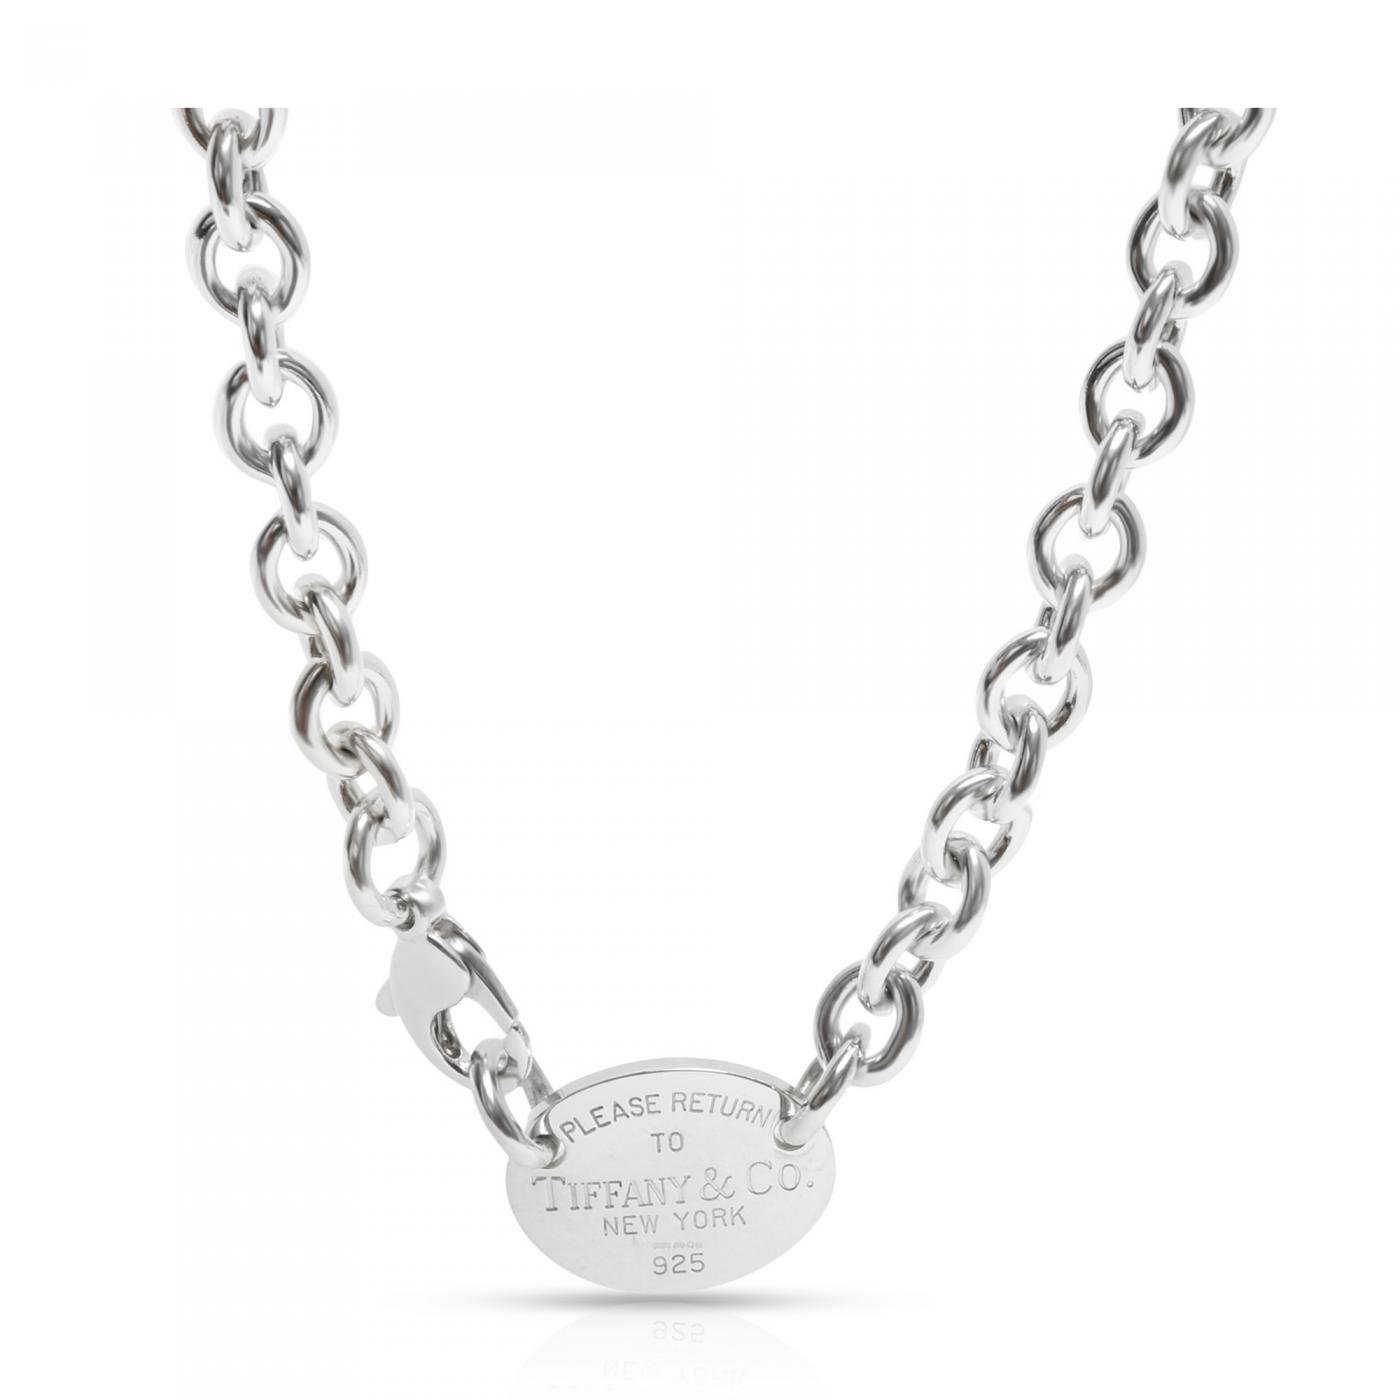 Tiffany And Co Tiffany Co Return To Tiffany Necklace In Sterling Silver